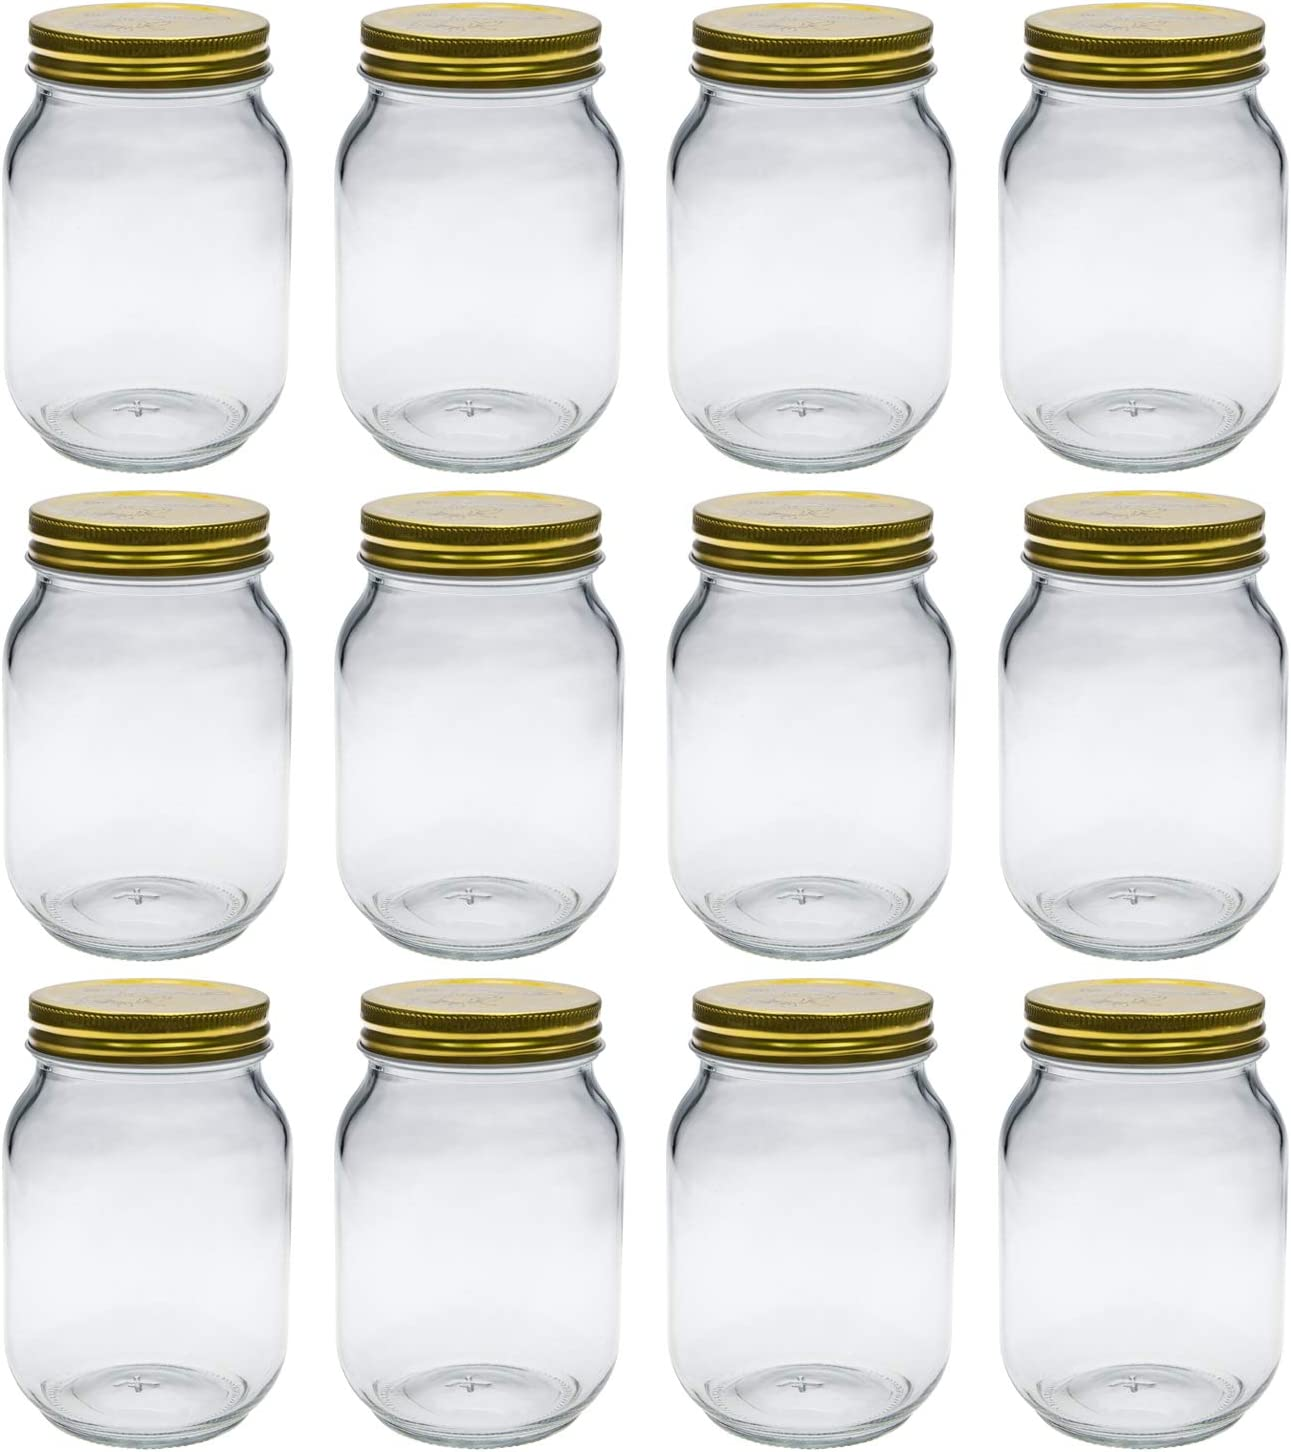 Tebery 12 Pack Mason Jars 16 oz With Regular Lids and Bands Glass Jars Canning Jars for Jam, Honey, Wedding Favors, Shower Favors, Baby Foods